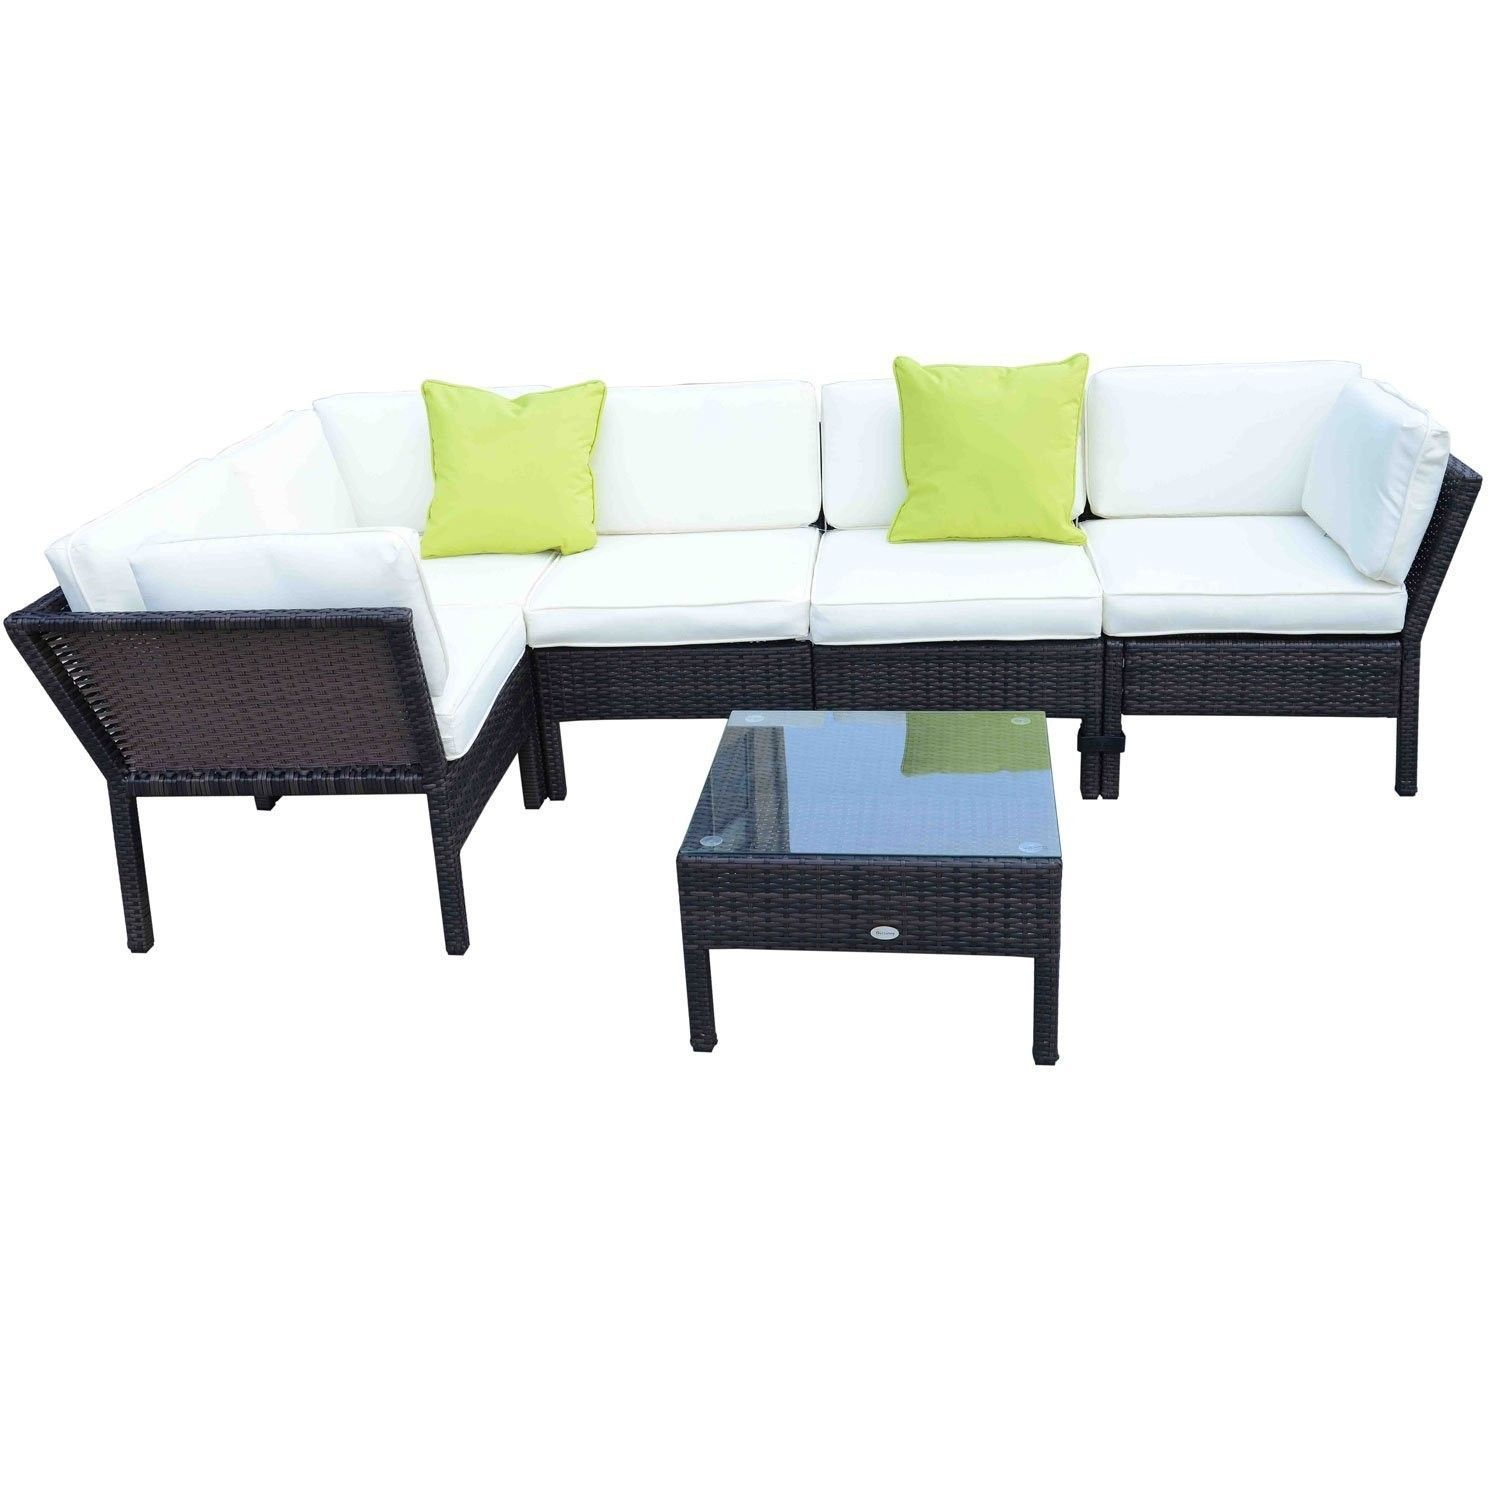 Furniture Outsunny Rattan Corner Sofa Side Table Set With